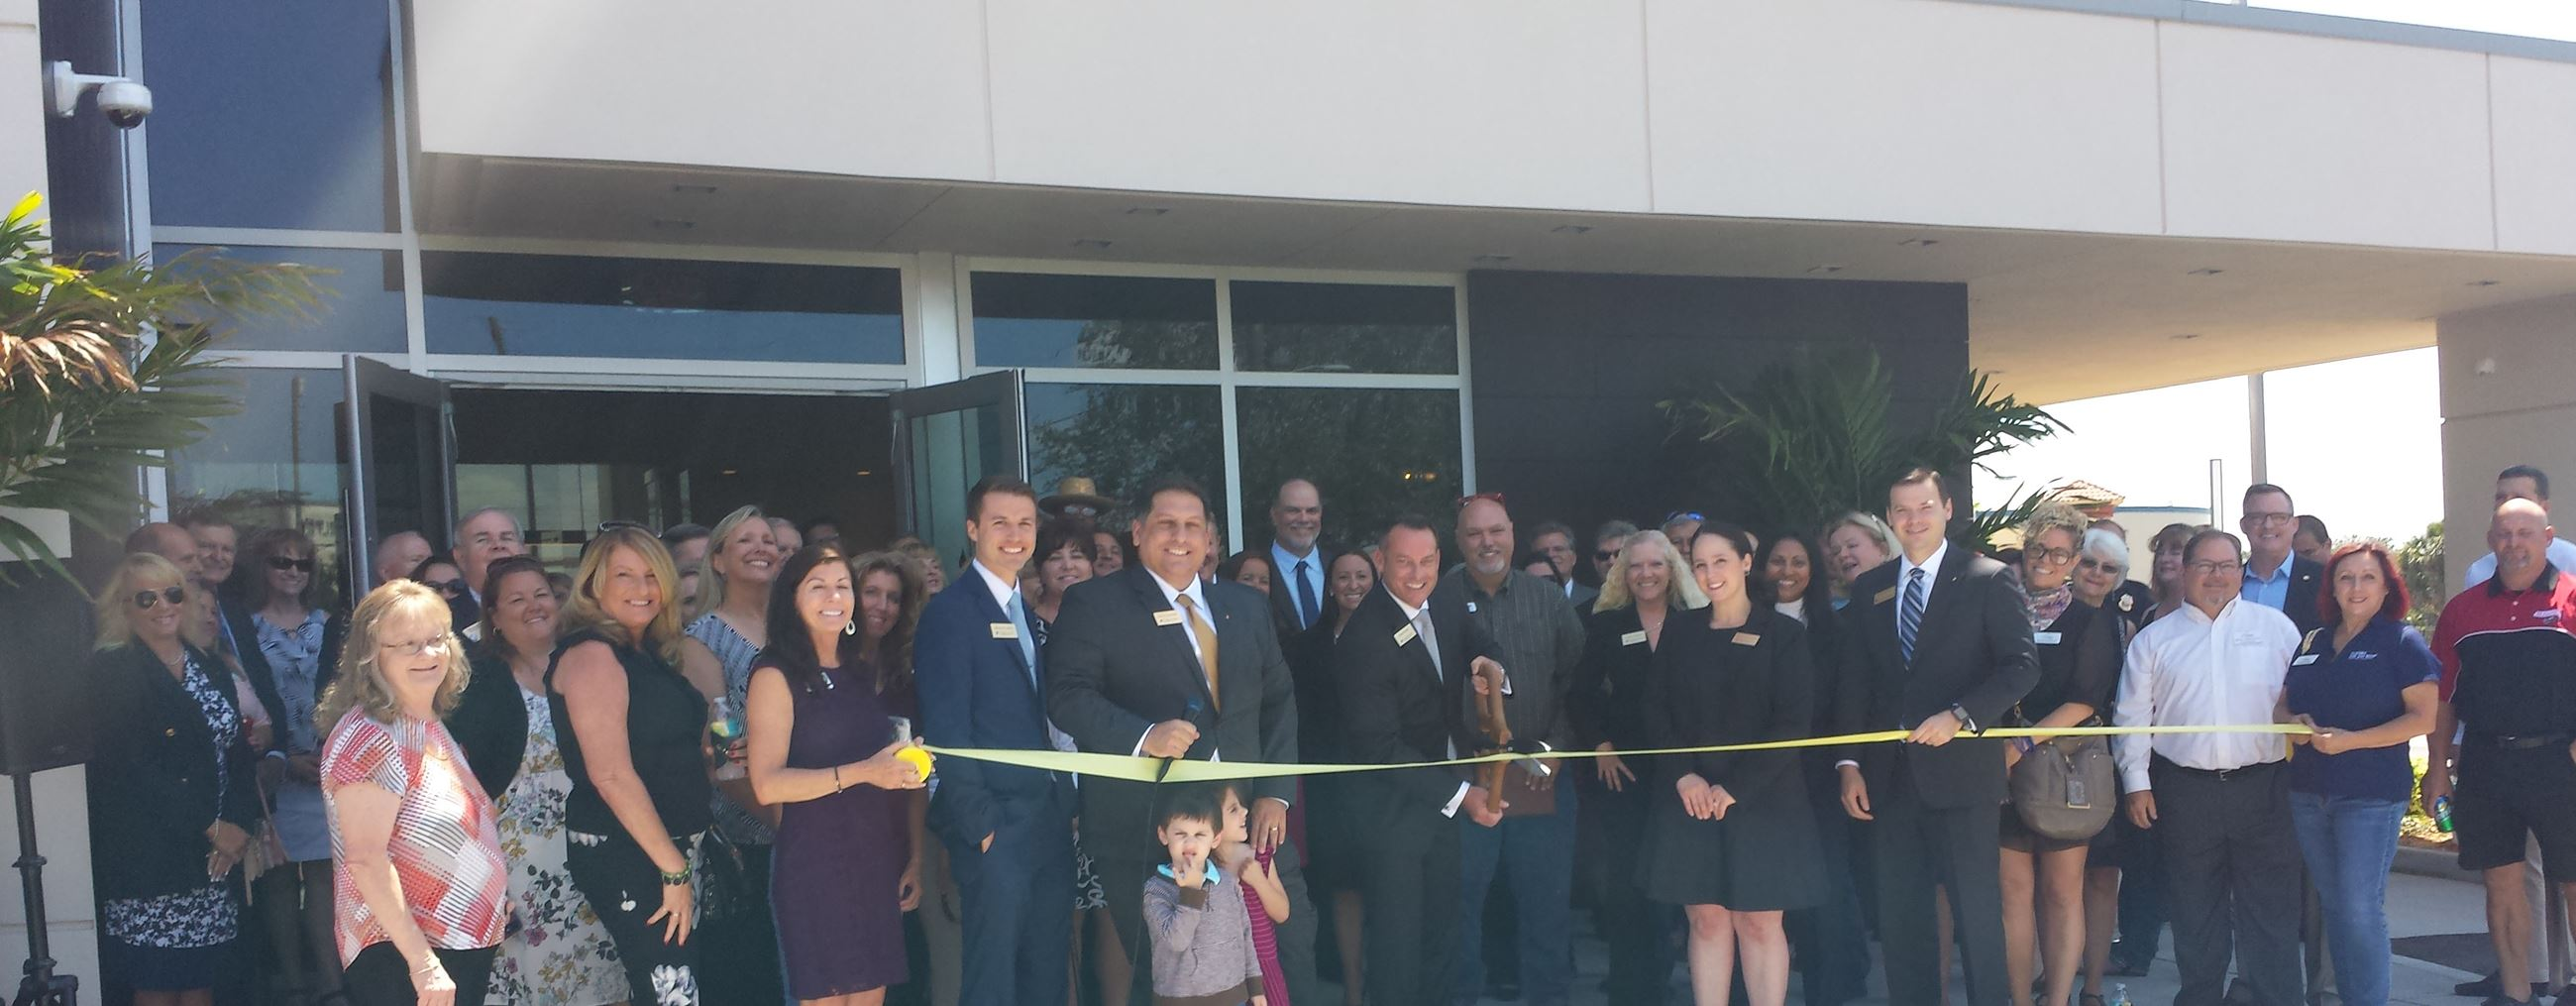 Bank of Tampa Ribbon Cutting